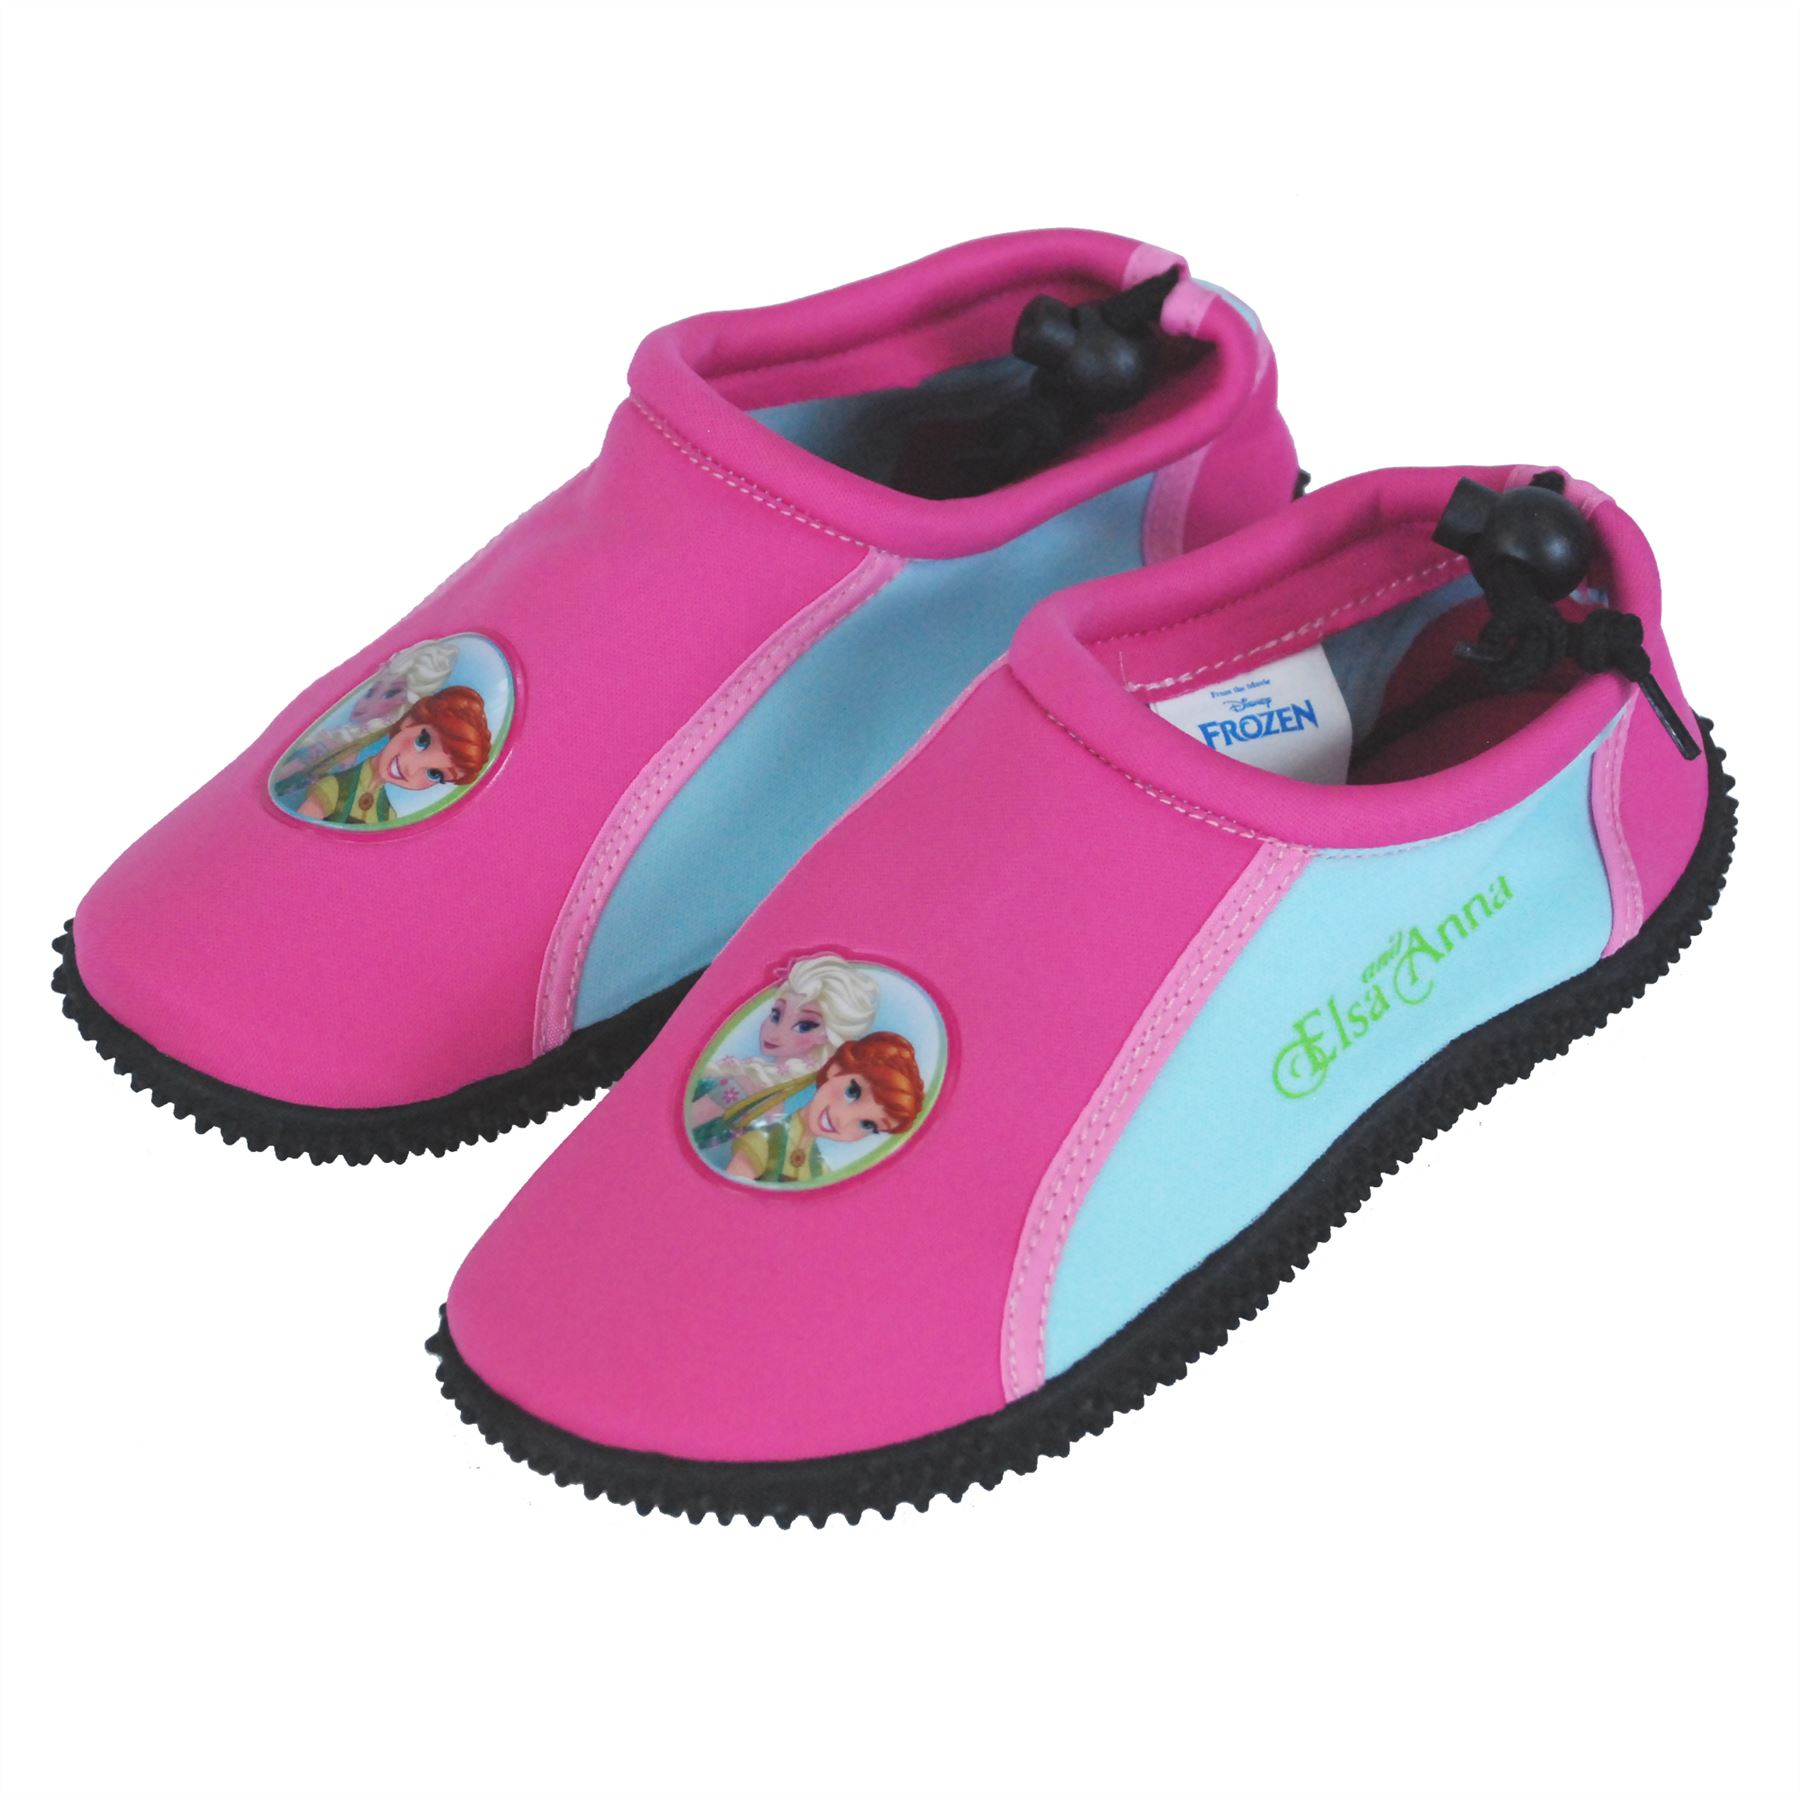 Wetsuit Canvas Shoes Pool /& Outdoor Disney® Girls Surf Aqua Shoes for Beach